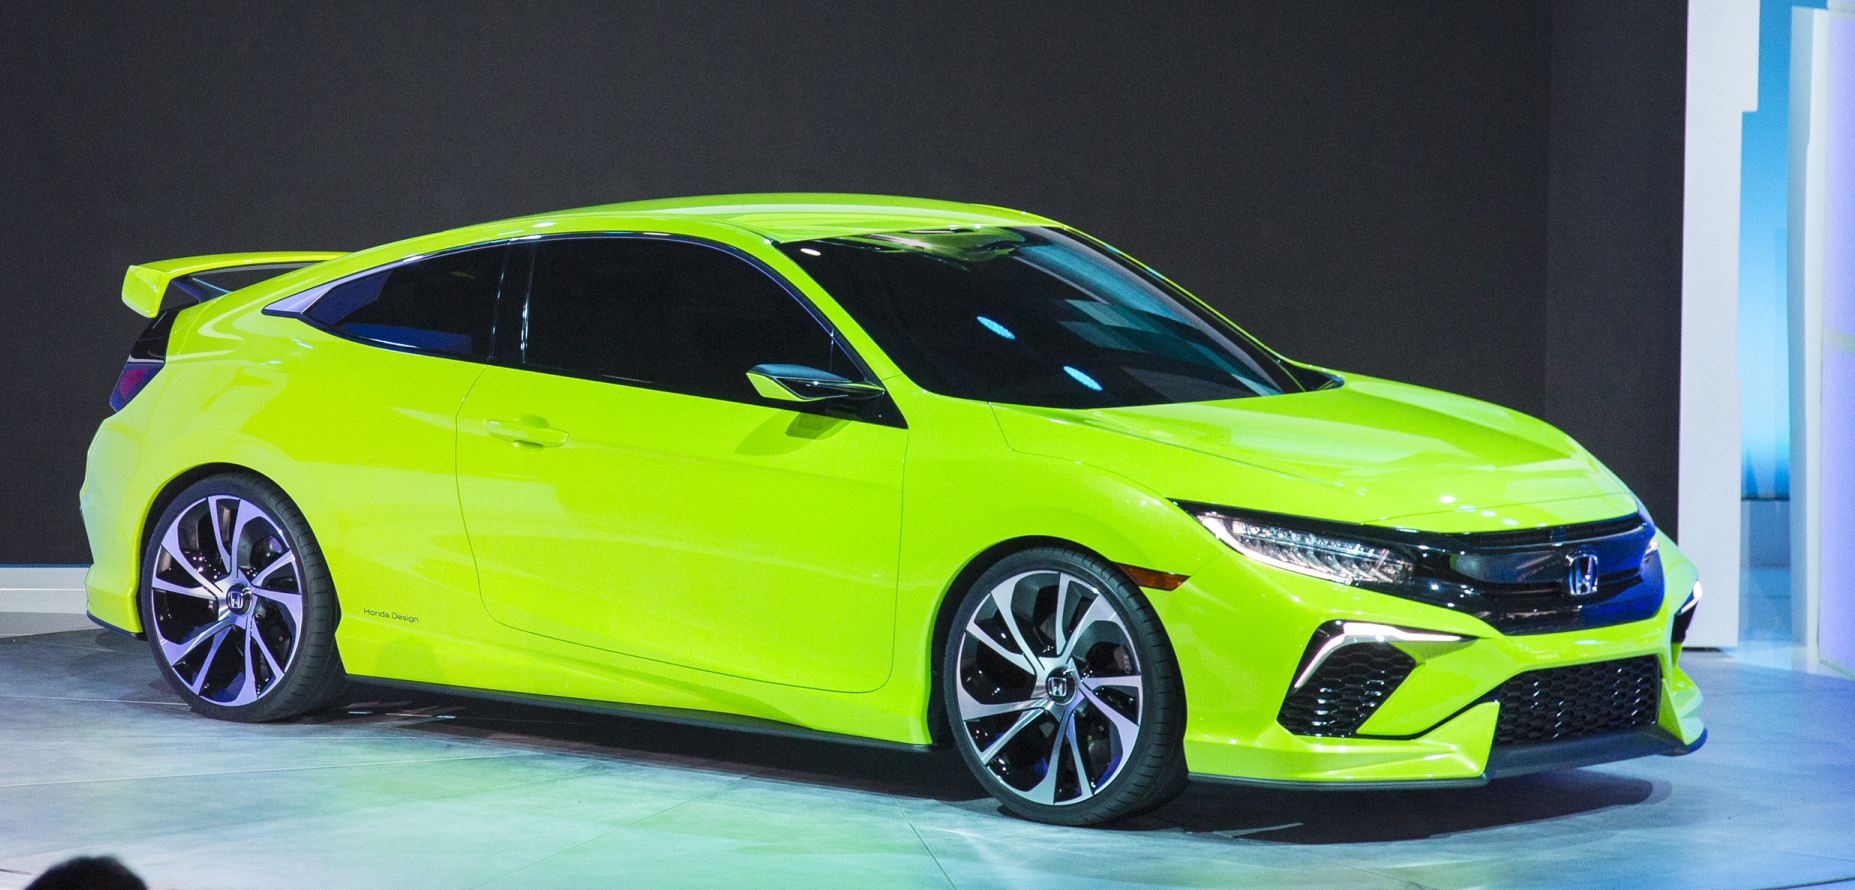 10th Gen Civic >> Honda Civic Concept debuts in NYC, previews tenth-gen for ASEAN – Type R hatch confirmed for US ...